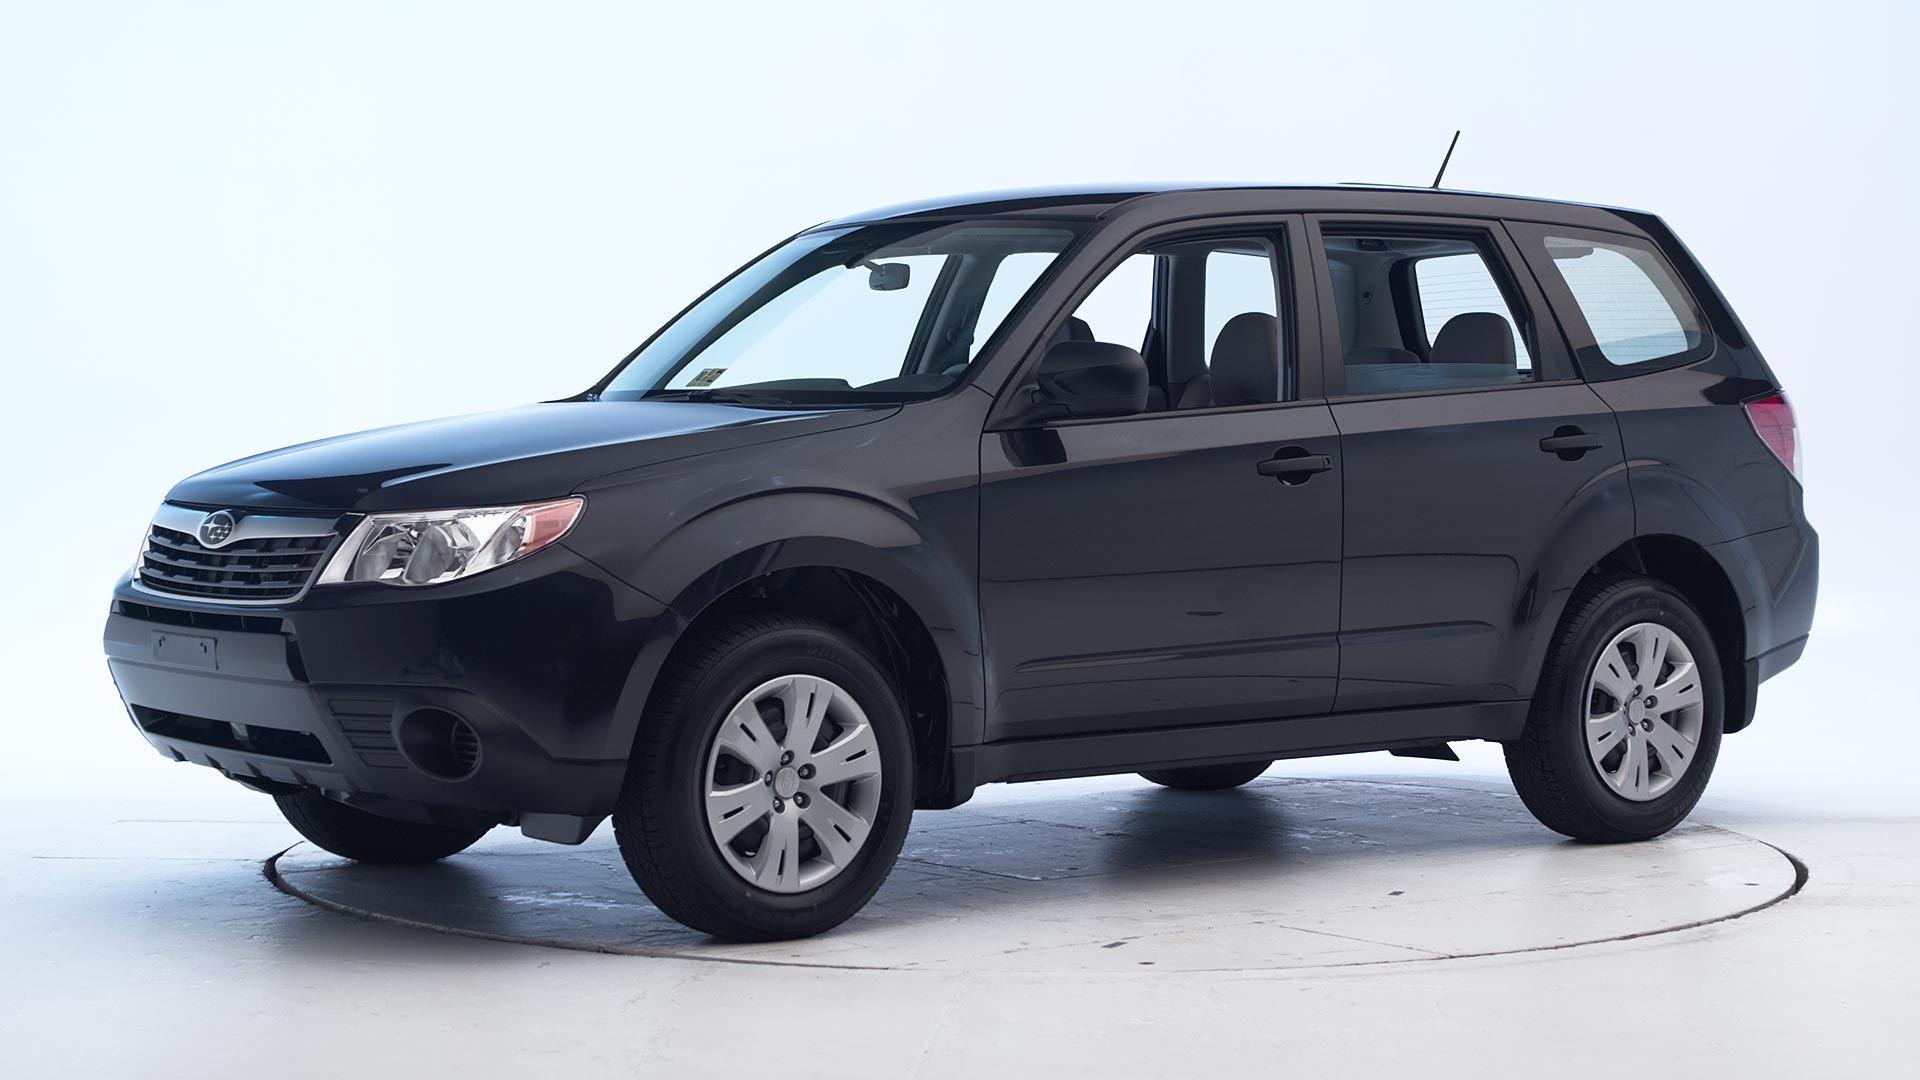 2010 Subaru Forester 4-door SUV